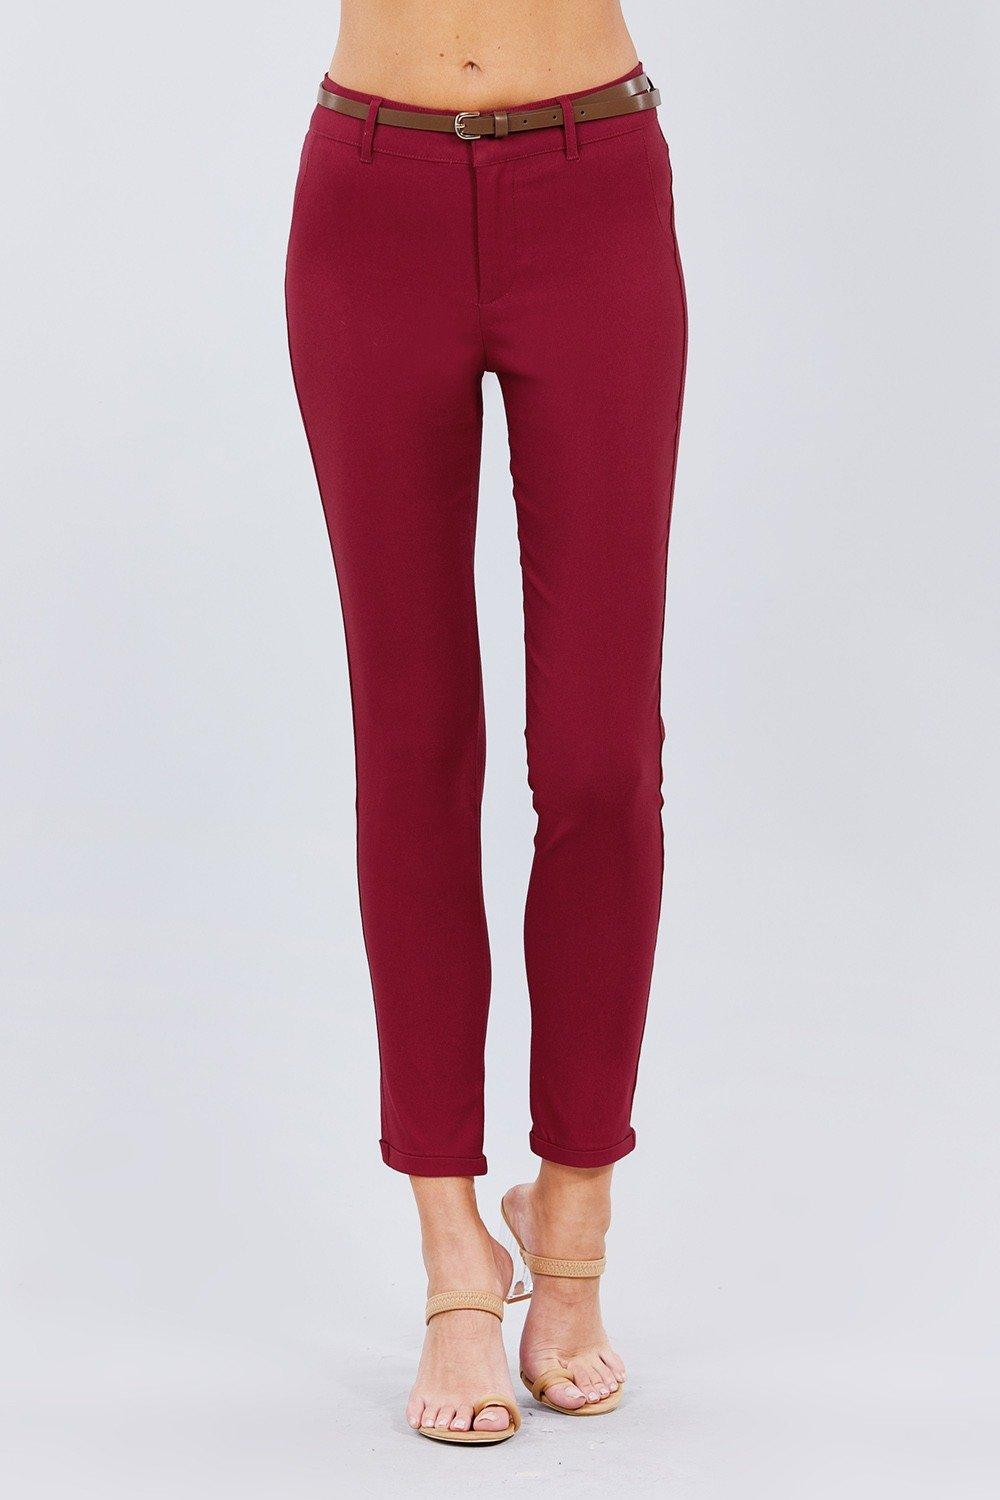 Belted Textured Long Pants - Naughty Smile Fashion